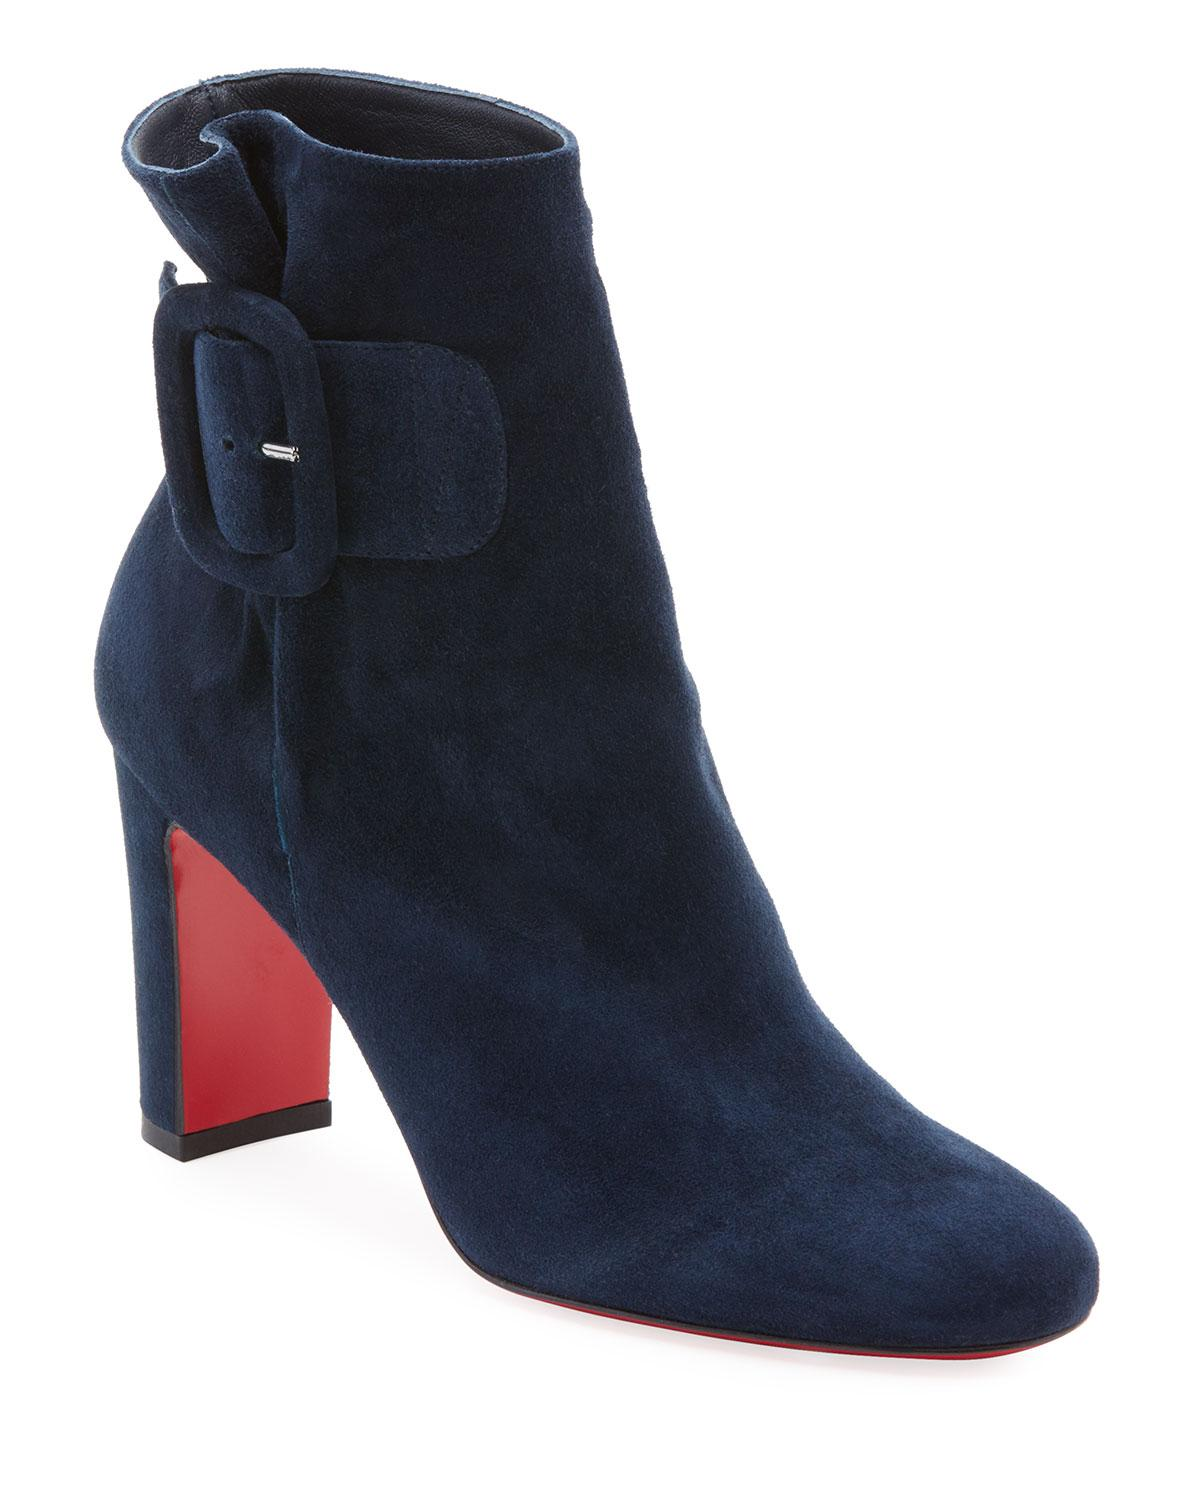 9cfd30e98107 Lyst - Christian Louboutin Tres Olivia Suede Buckled Red Sole ...